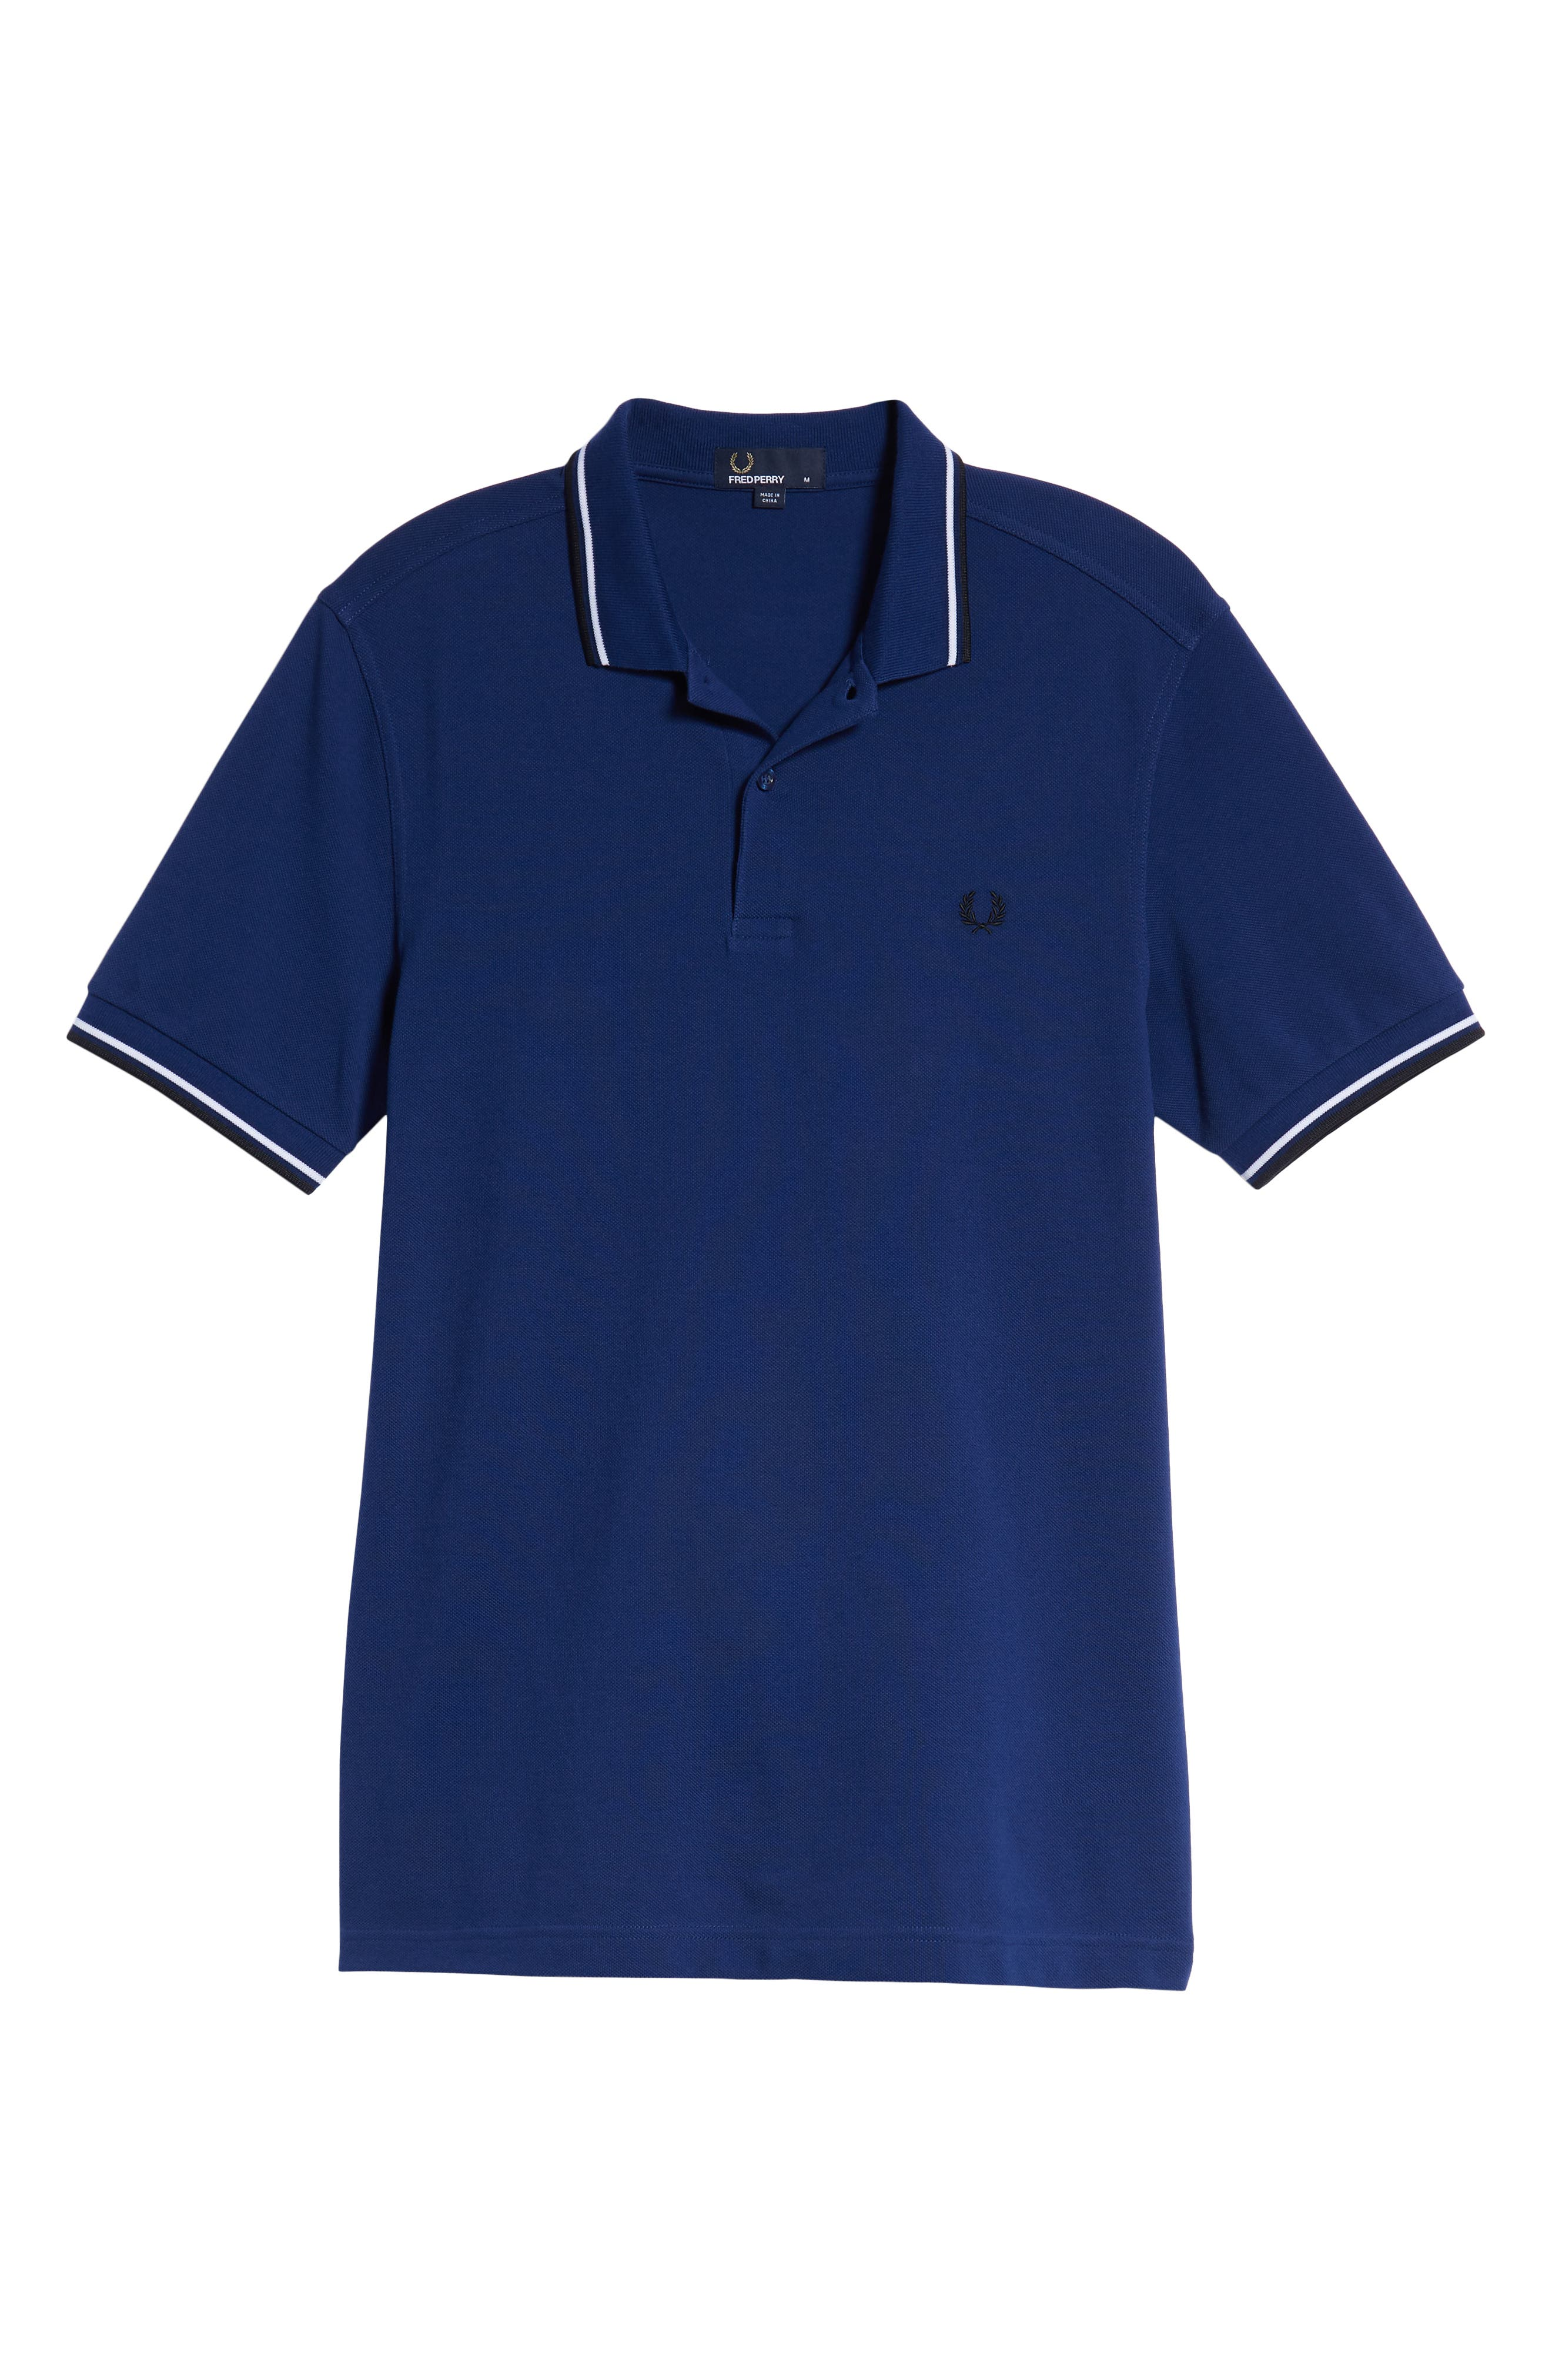 Extra Trim Fit Twin Tipped Piqué Polo,                             Alternate thumbnail 6, color,                             MEDIEVAL BLUE / WHITE / BLACK